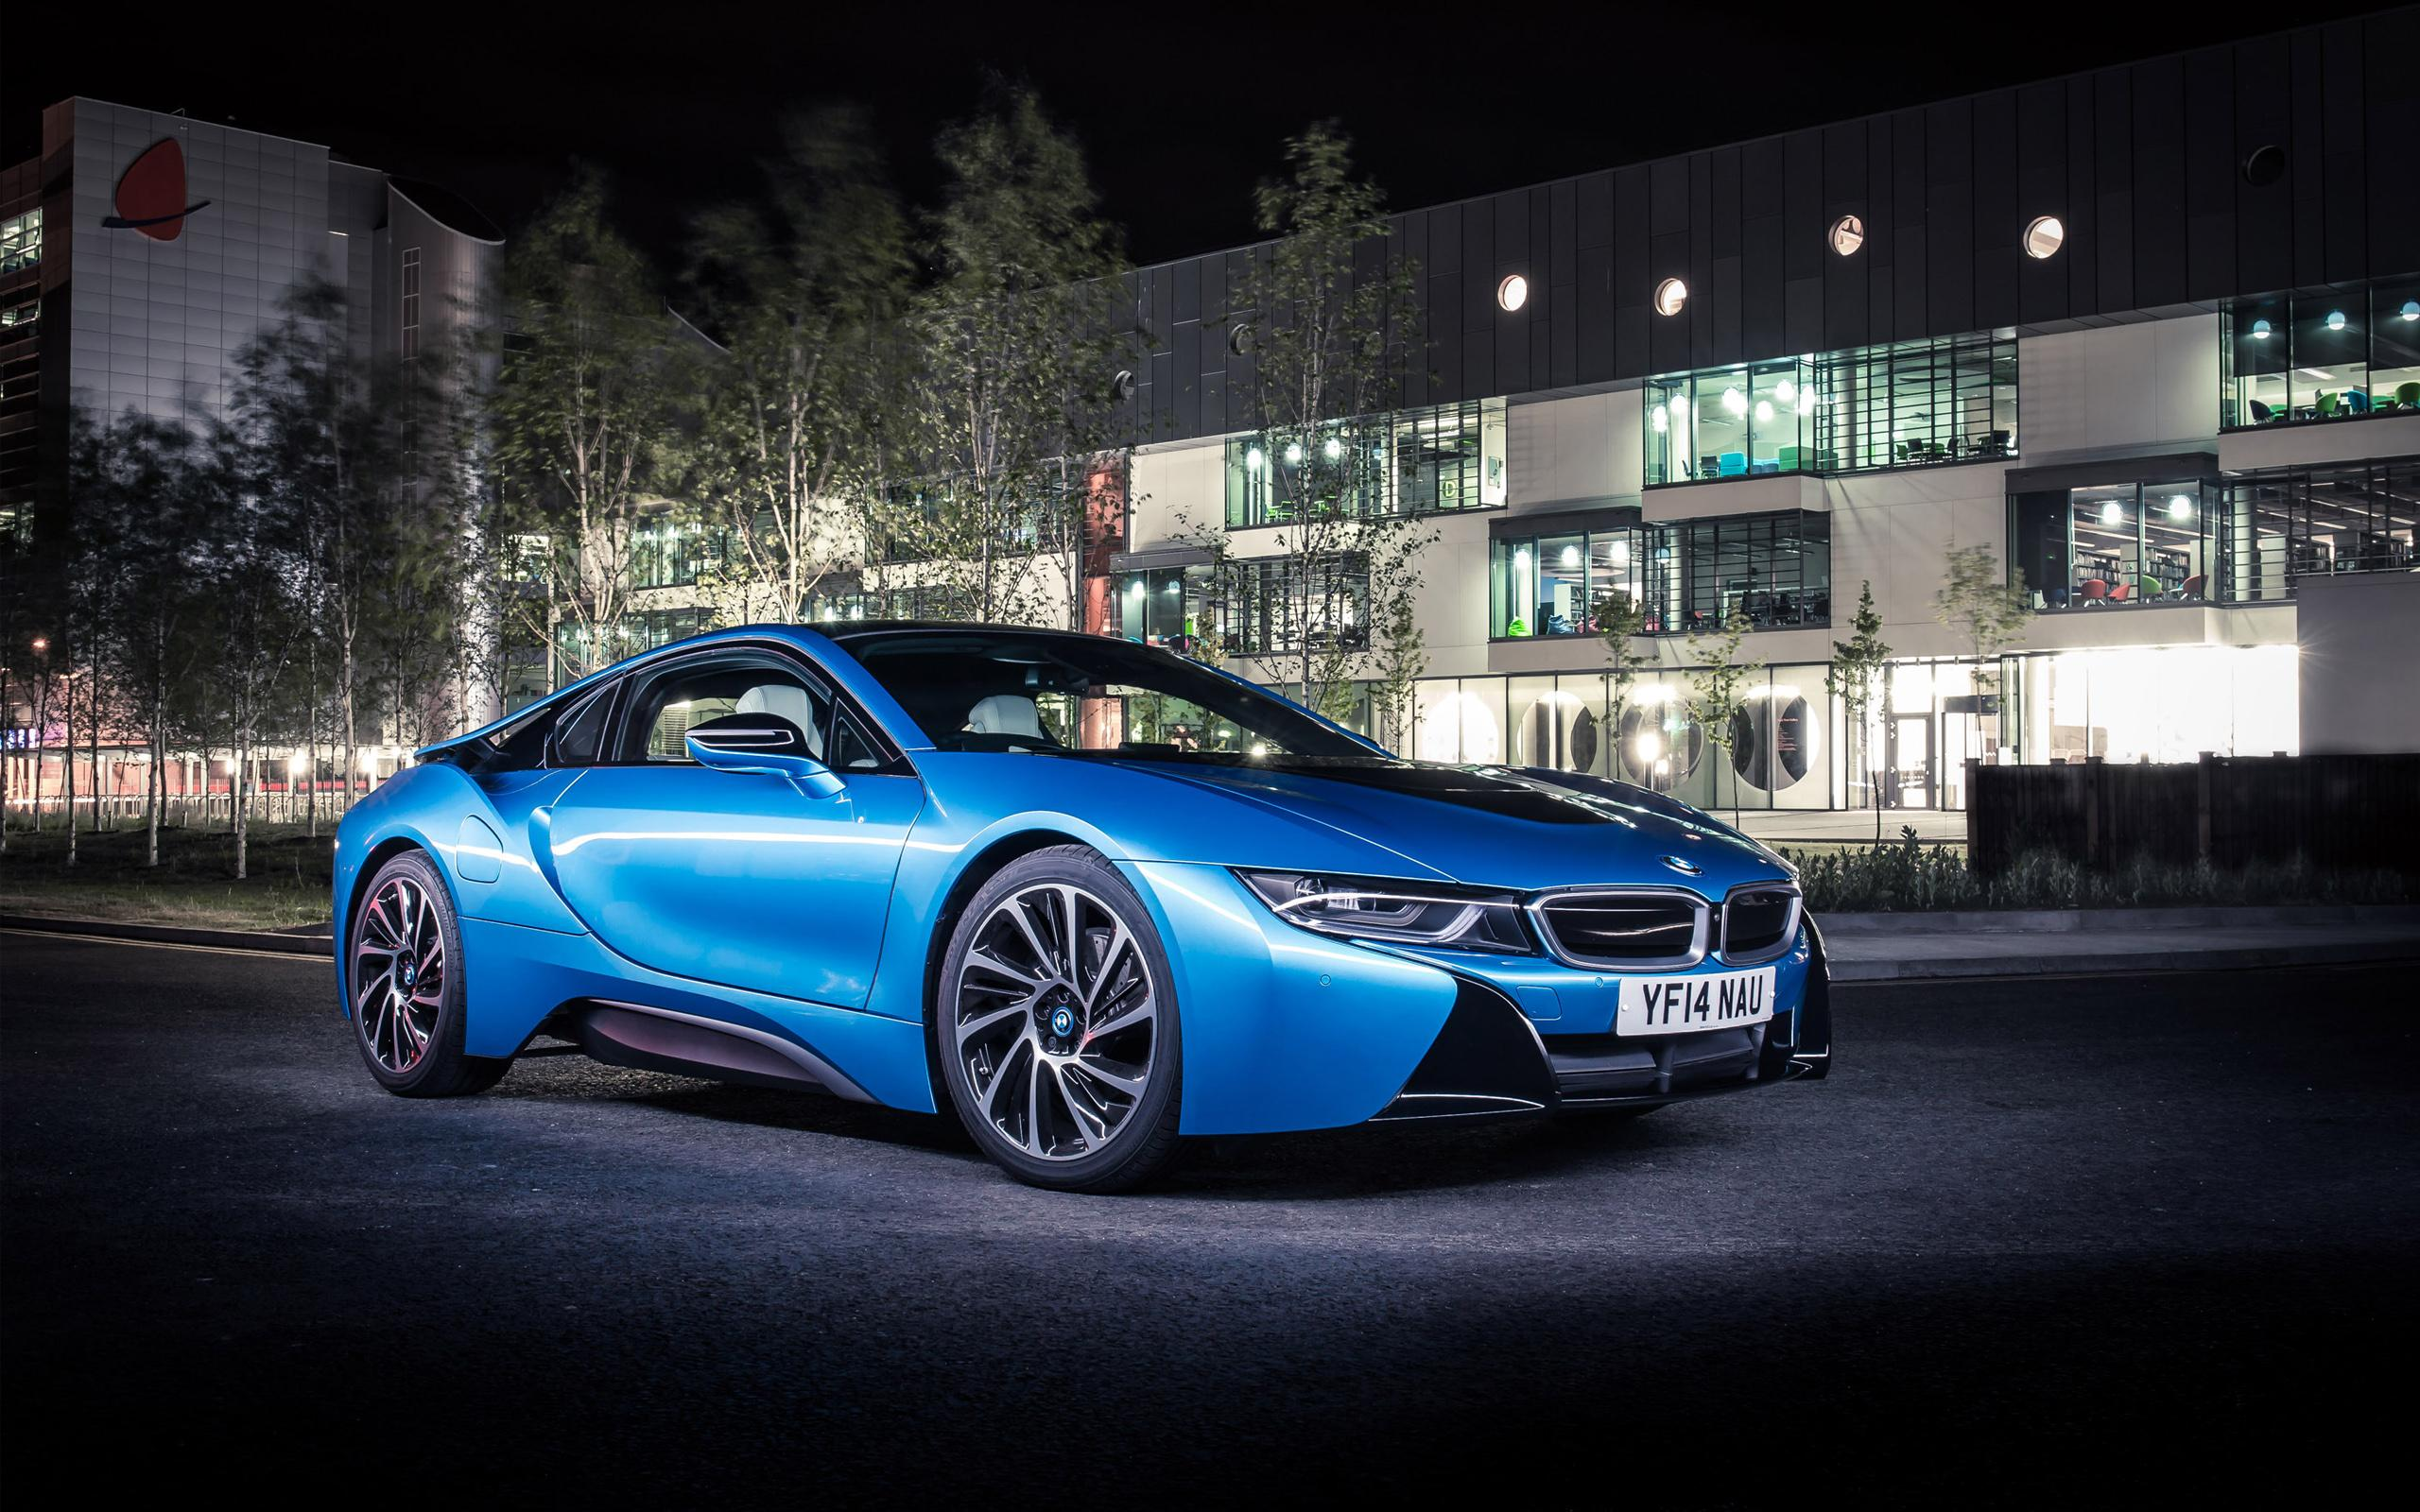 Download Blue Bmw I8 Car Wallpaper 64646 2560x1600 Px High